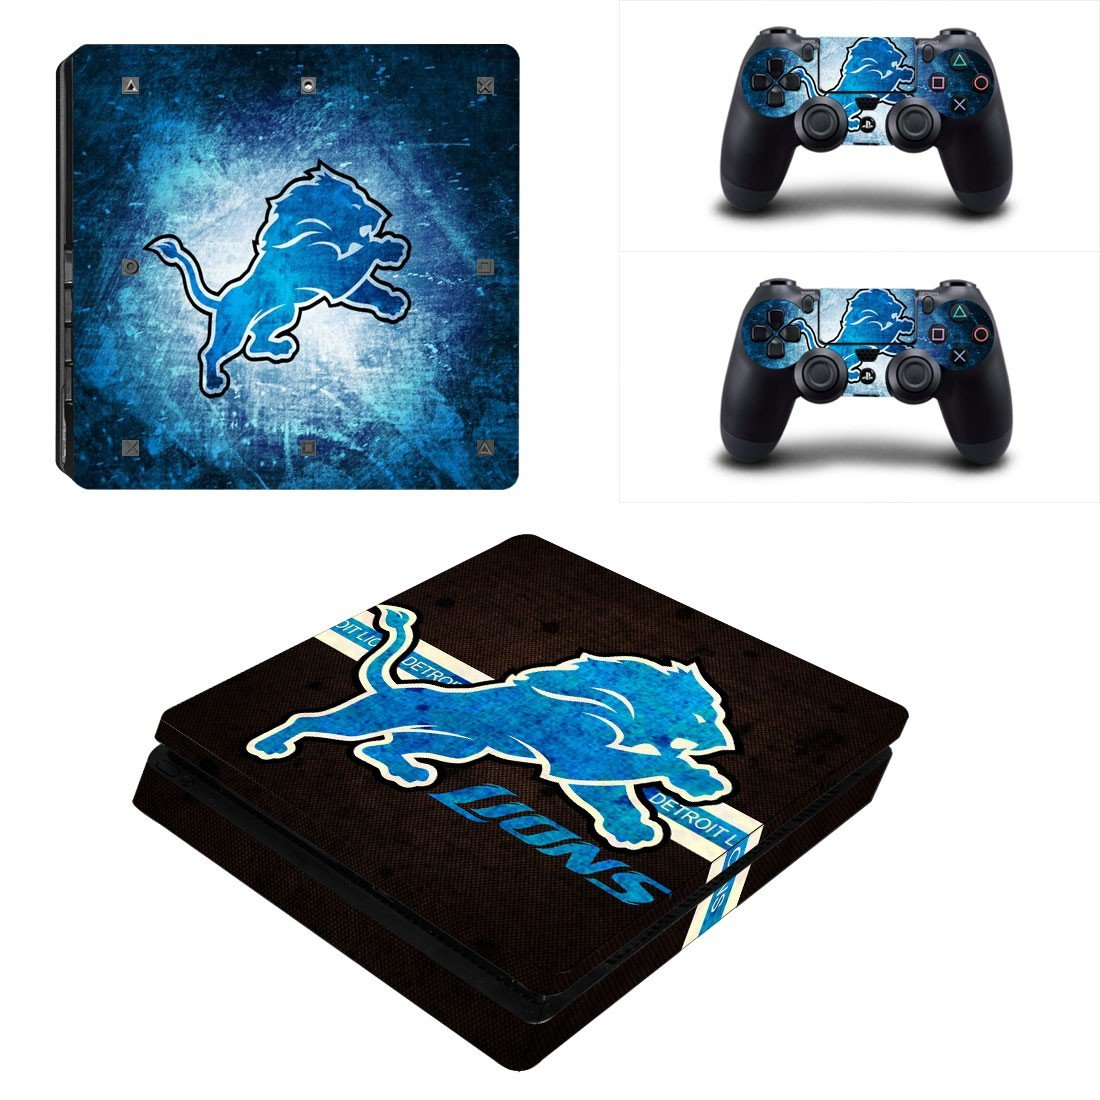 Detroit Lions Play Station 4 slim skin decal for console and 2 controllers